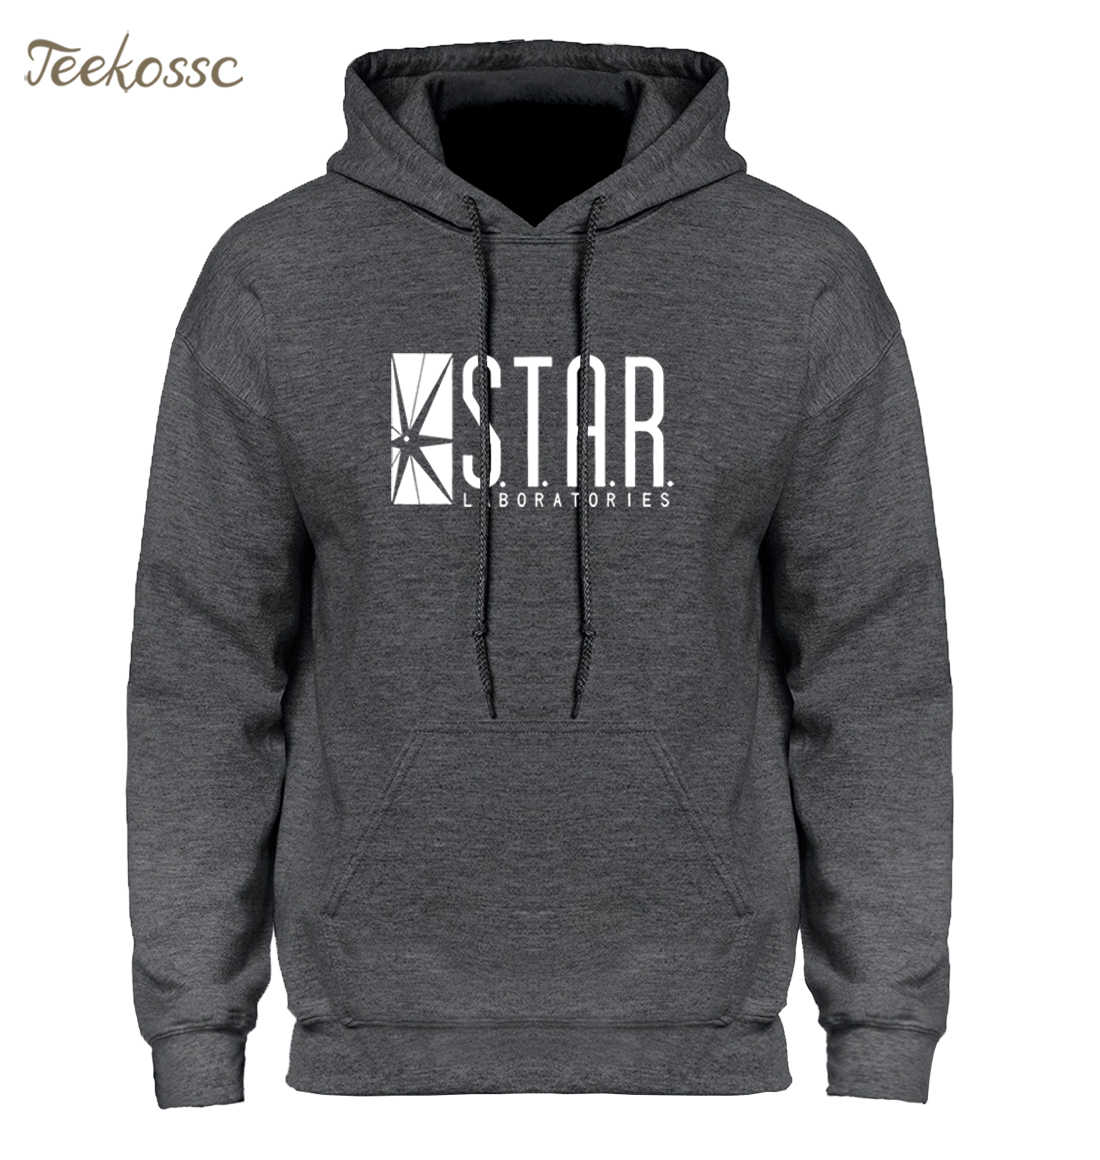 Superman Serie Ster S. t. een. r. labs Jumper De Flash Gotham City Comic Boeken Zwarte Hoodie Hoodies Sweatshirt Mannen 2018 Hooded Hoody